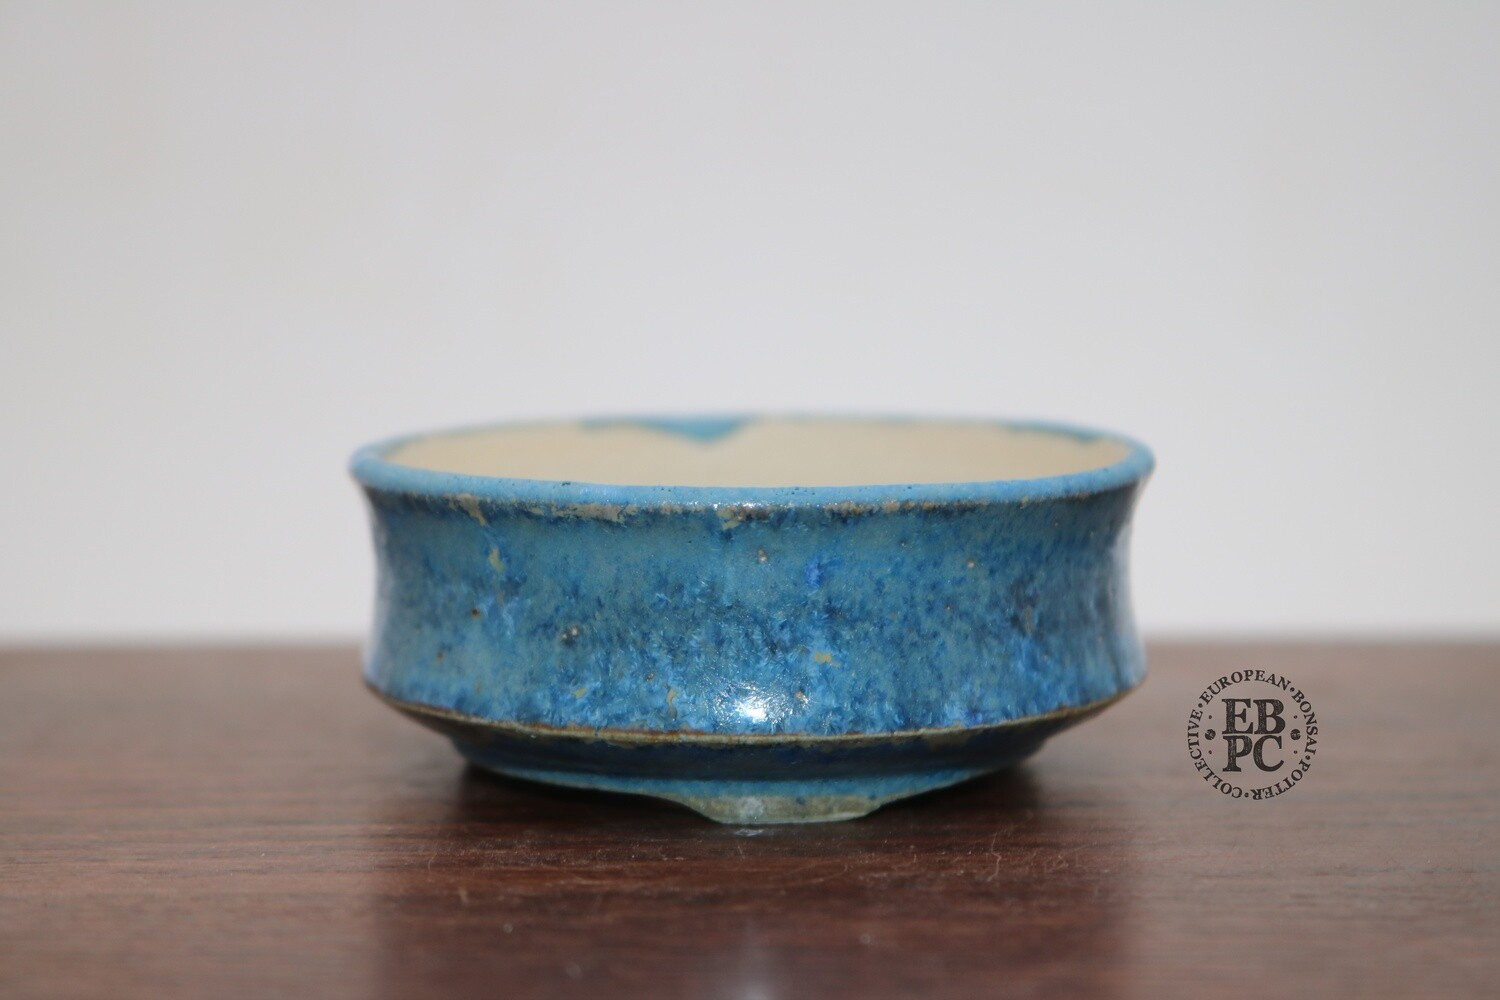 SOLD - PAS Pots - 7,6cm  Round; Mame / Accent pot; Hand Thrown; Stunning Blues over Cream; Detailed foot ring; Patricia